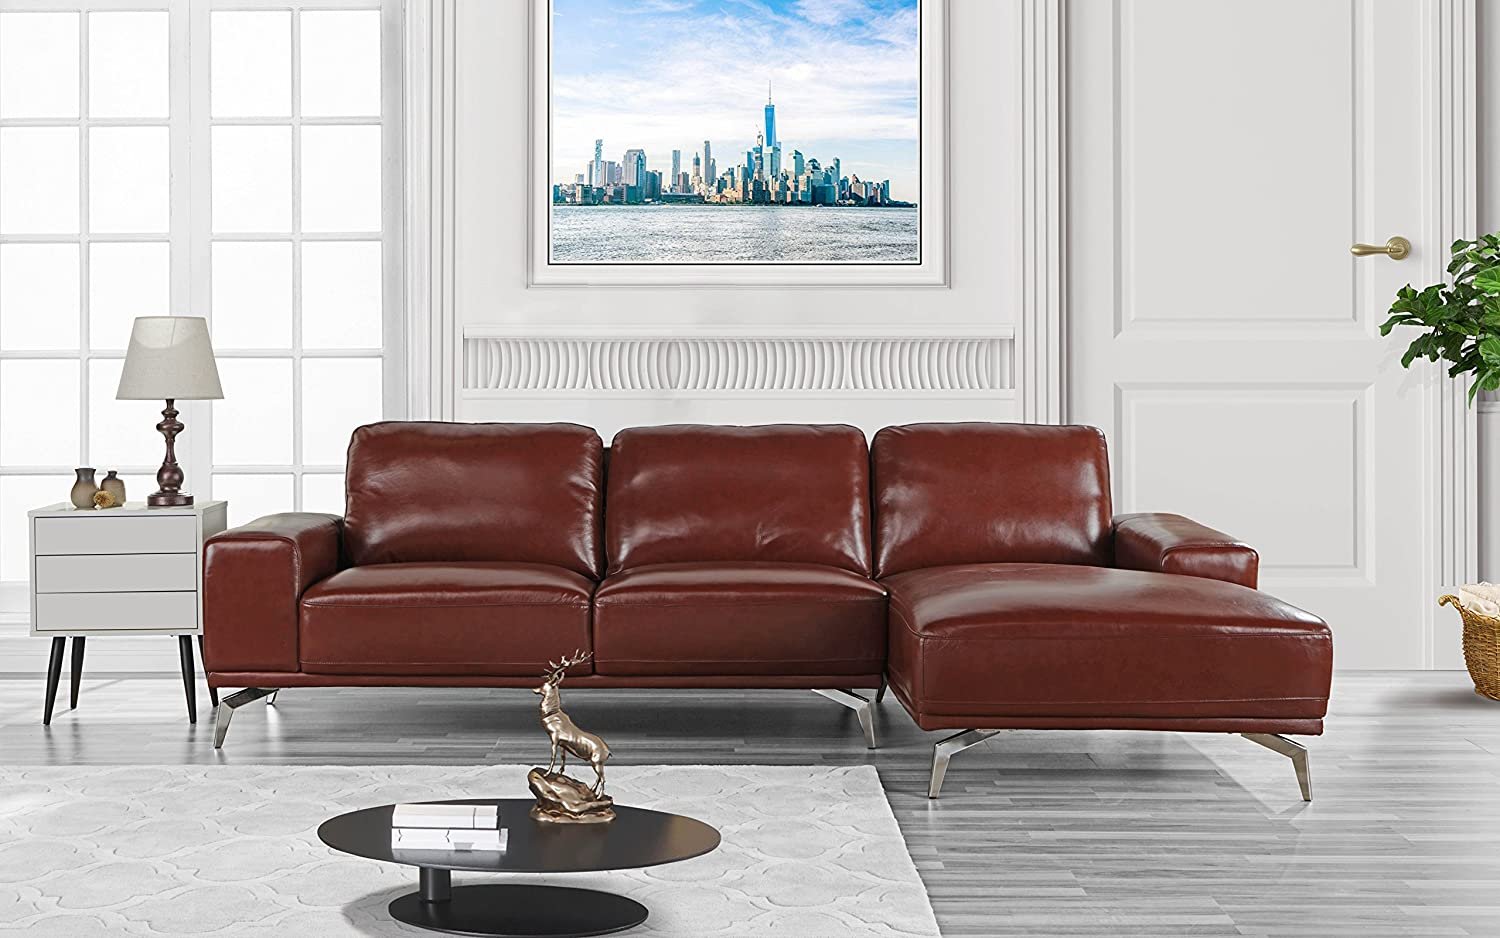 Amazoncom Modern Real Leather Sectional Sofa L Shape Couch W